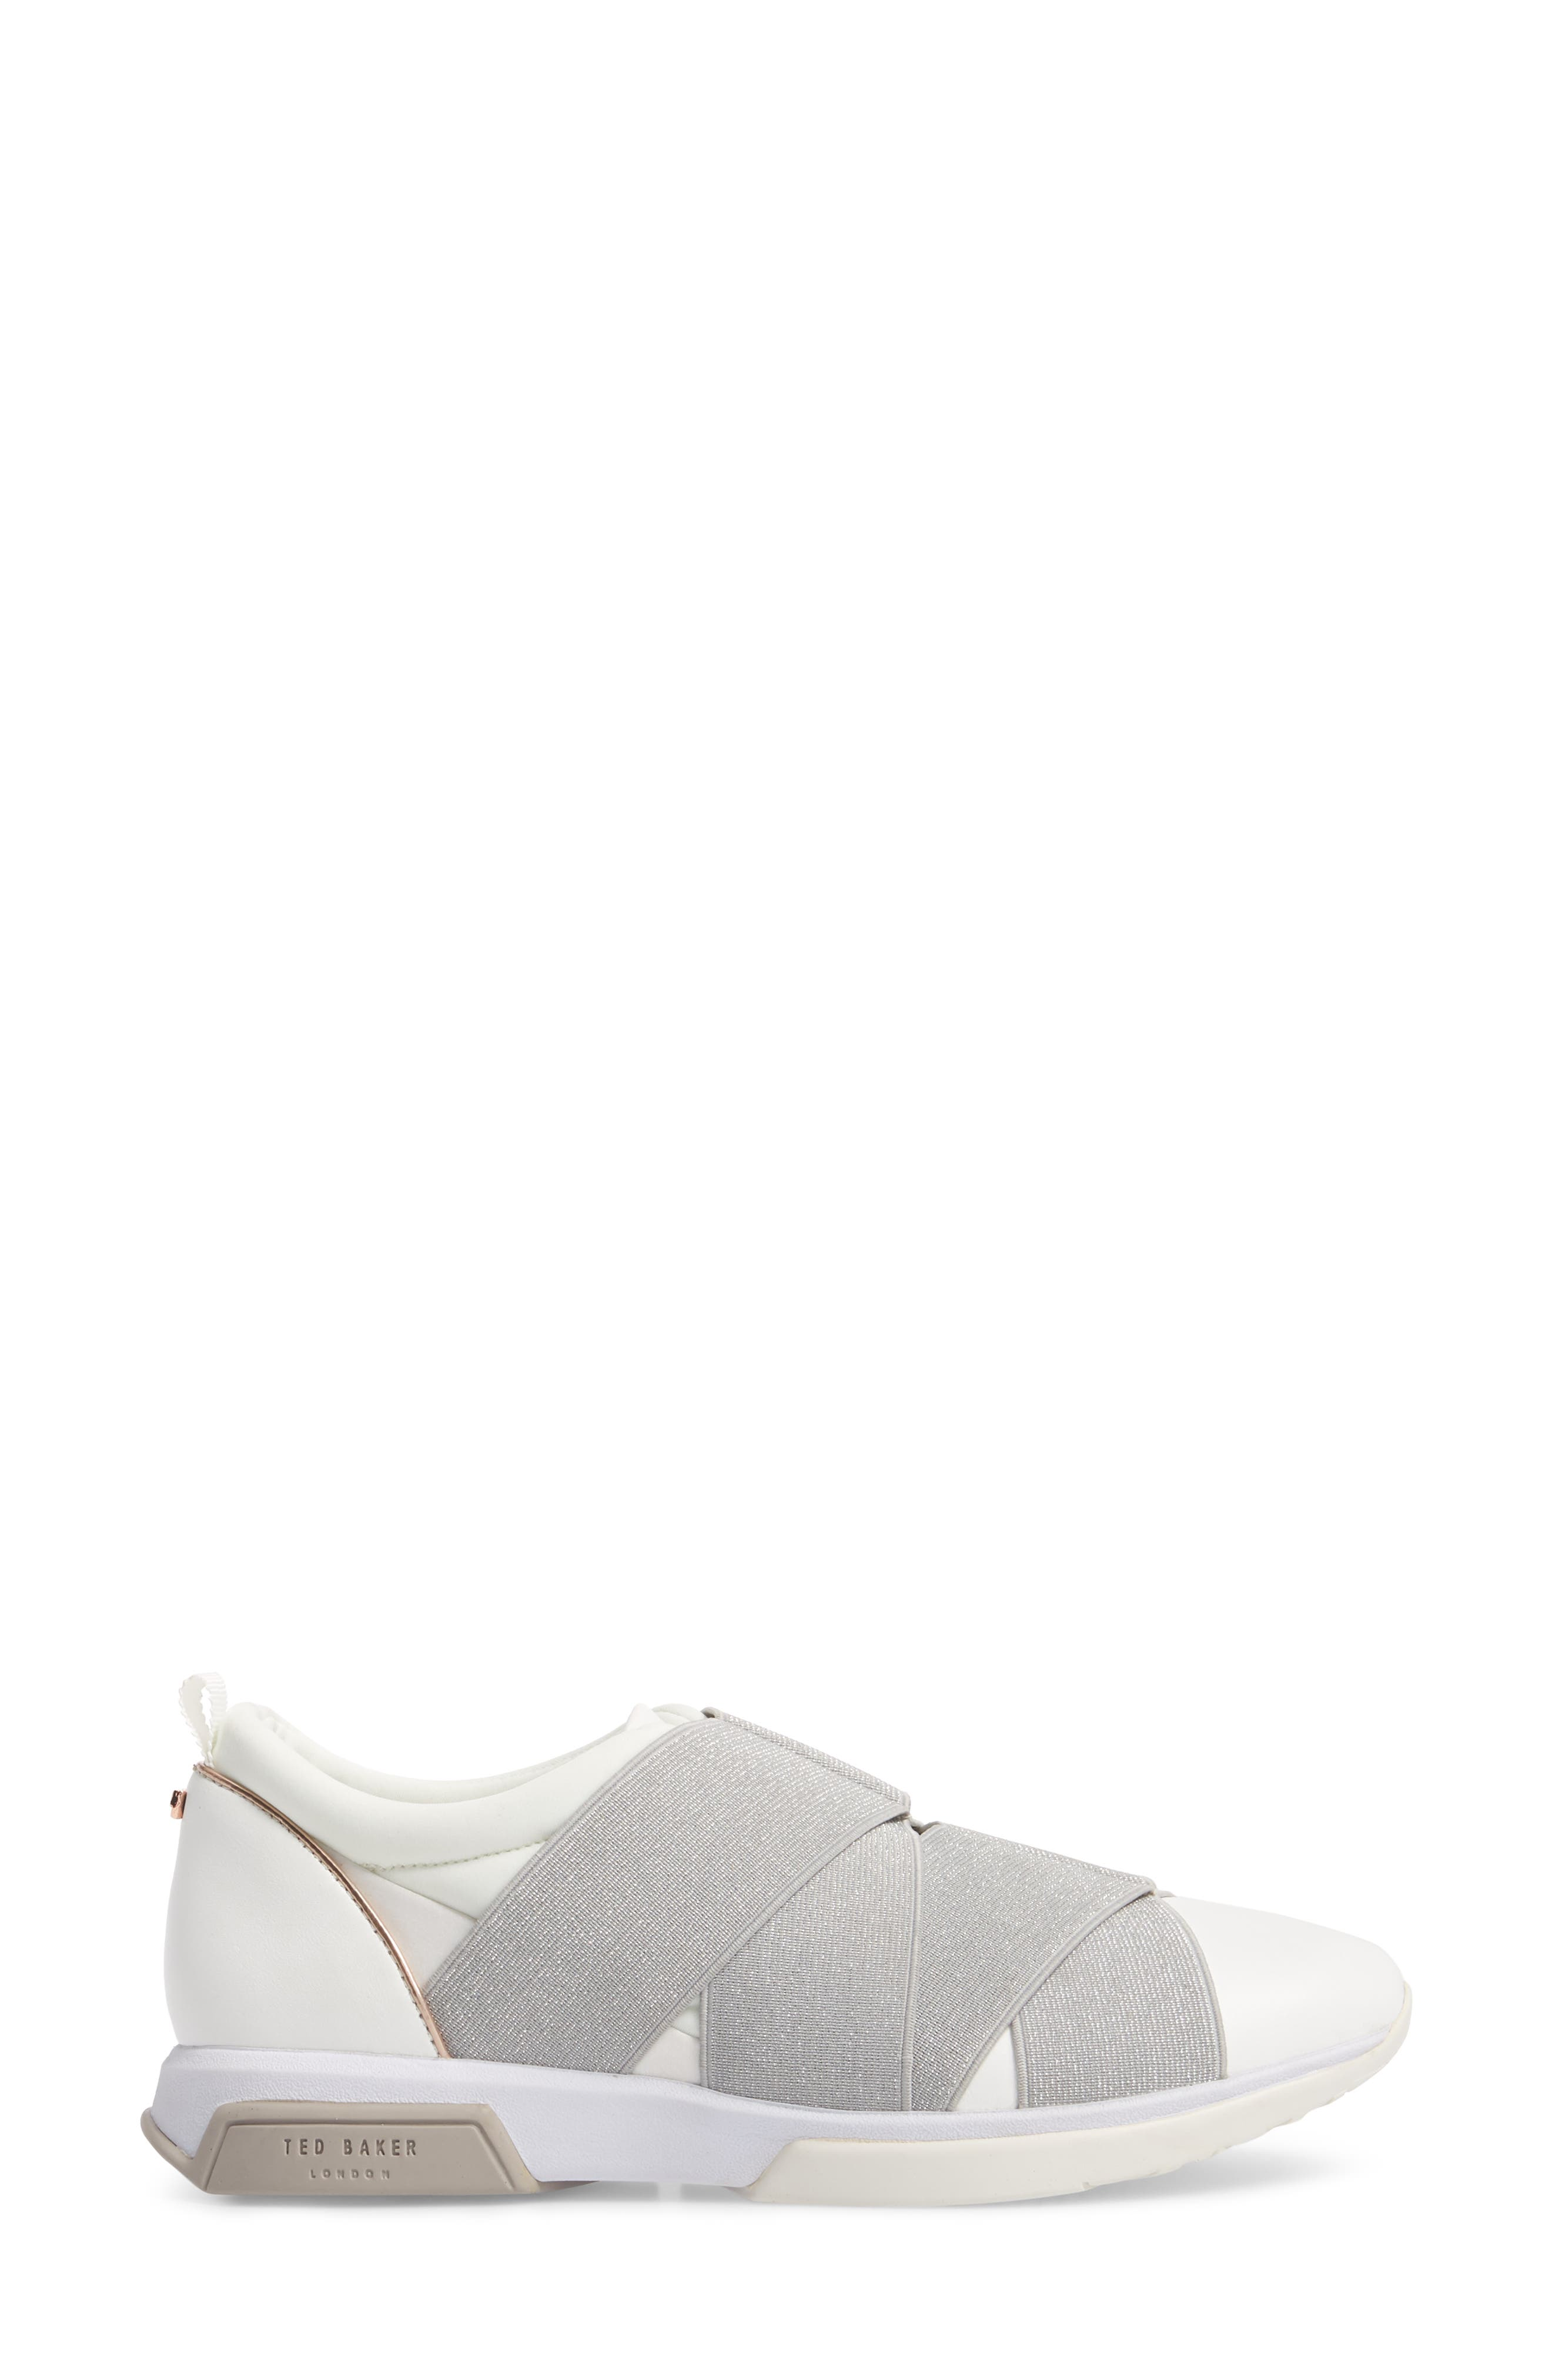 TED BAKER LONDON, Queane Sneaker, Alternate thumbnail 3, color, WHITE/ SILVER LEATHER